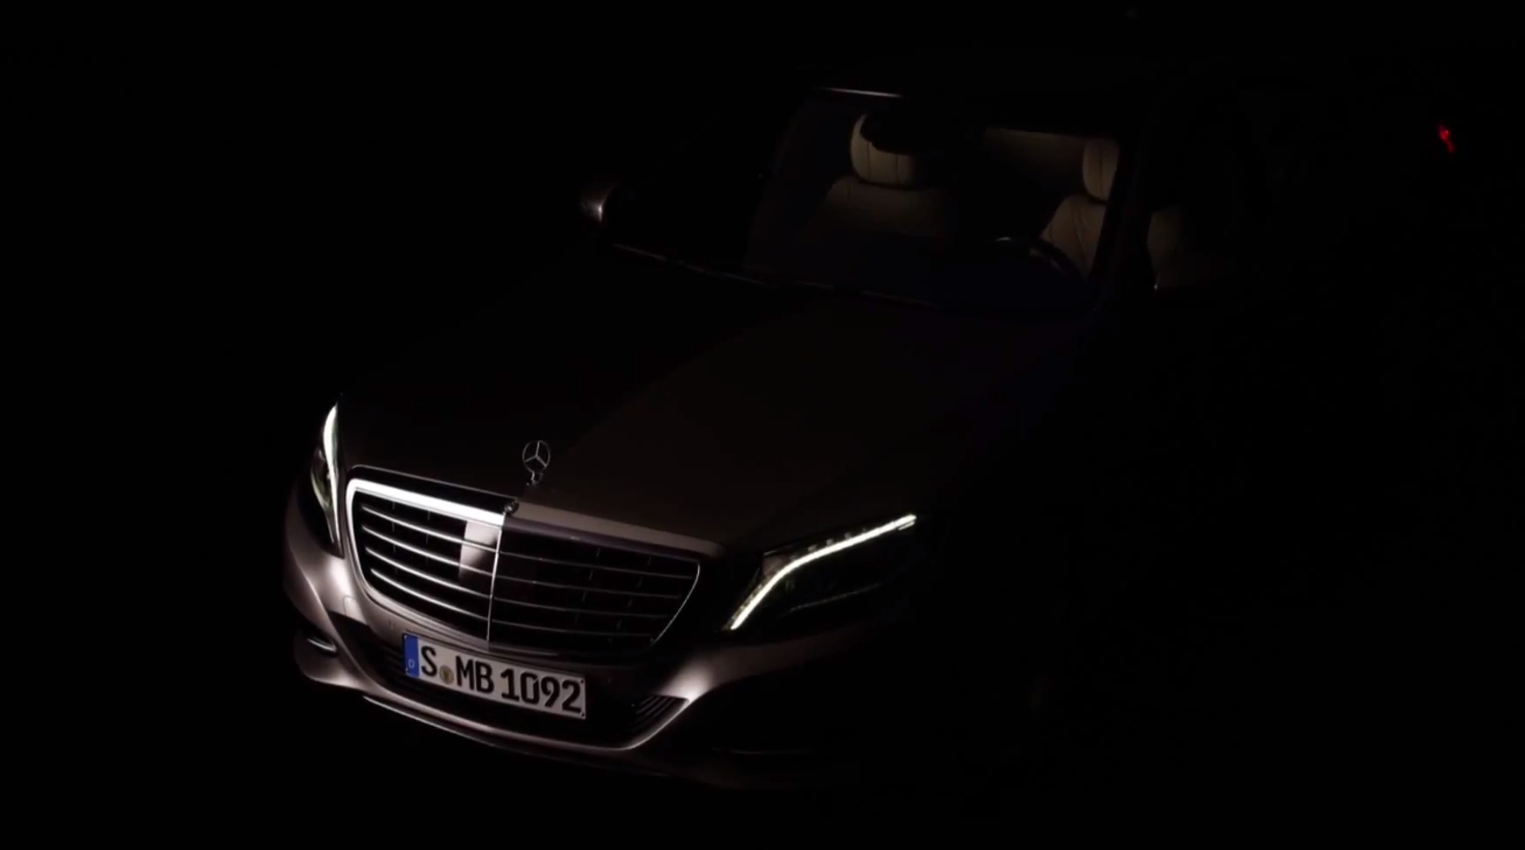 the 2014 s class to - Mercedes Benz 2014 S Class Black